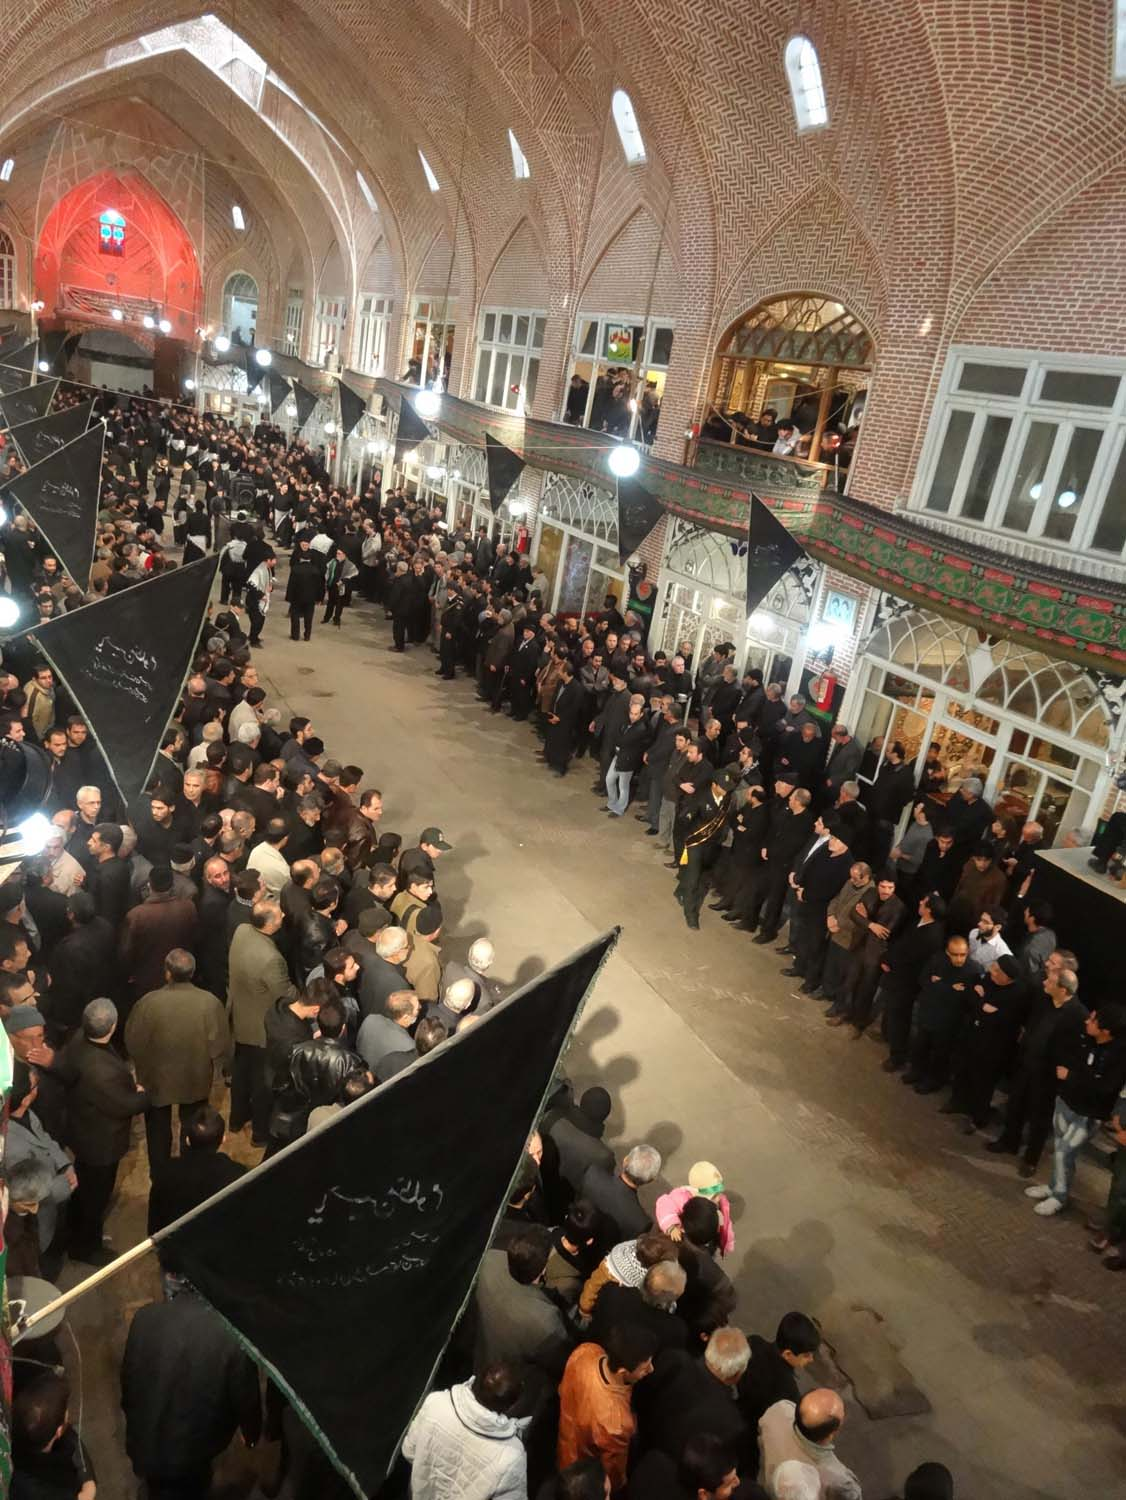 the next group commemorates Imam Hoessein in the spectacular Tabriz bazaar